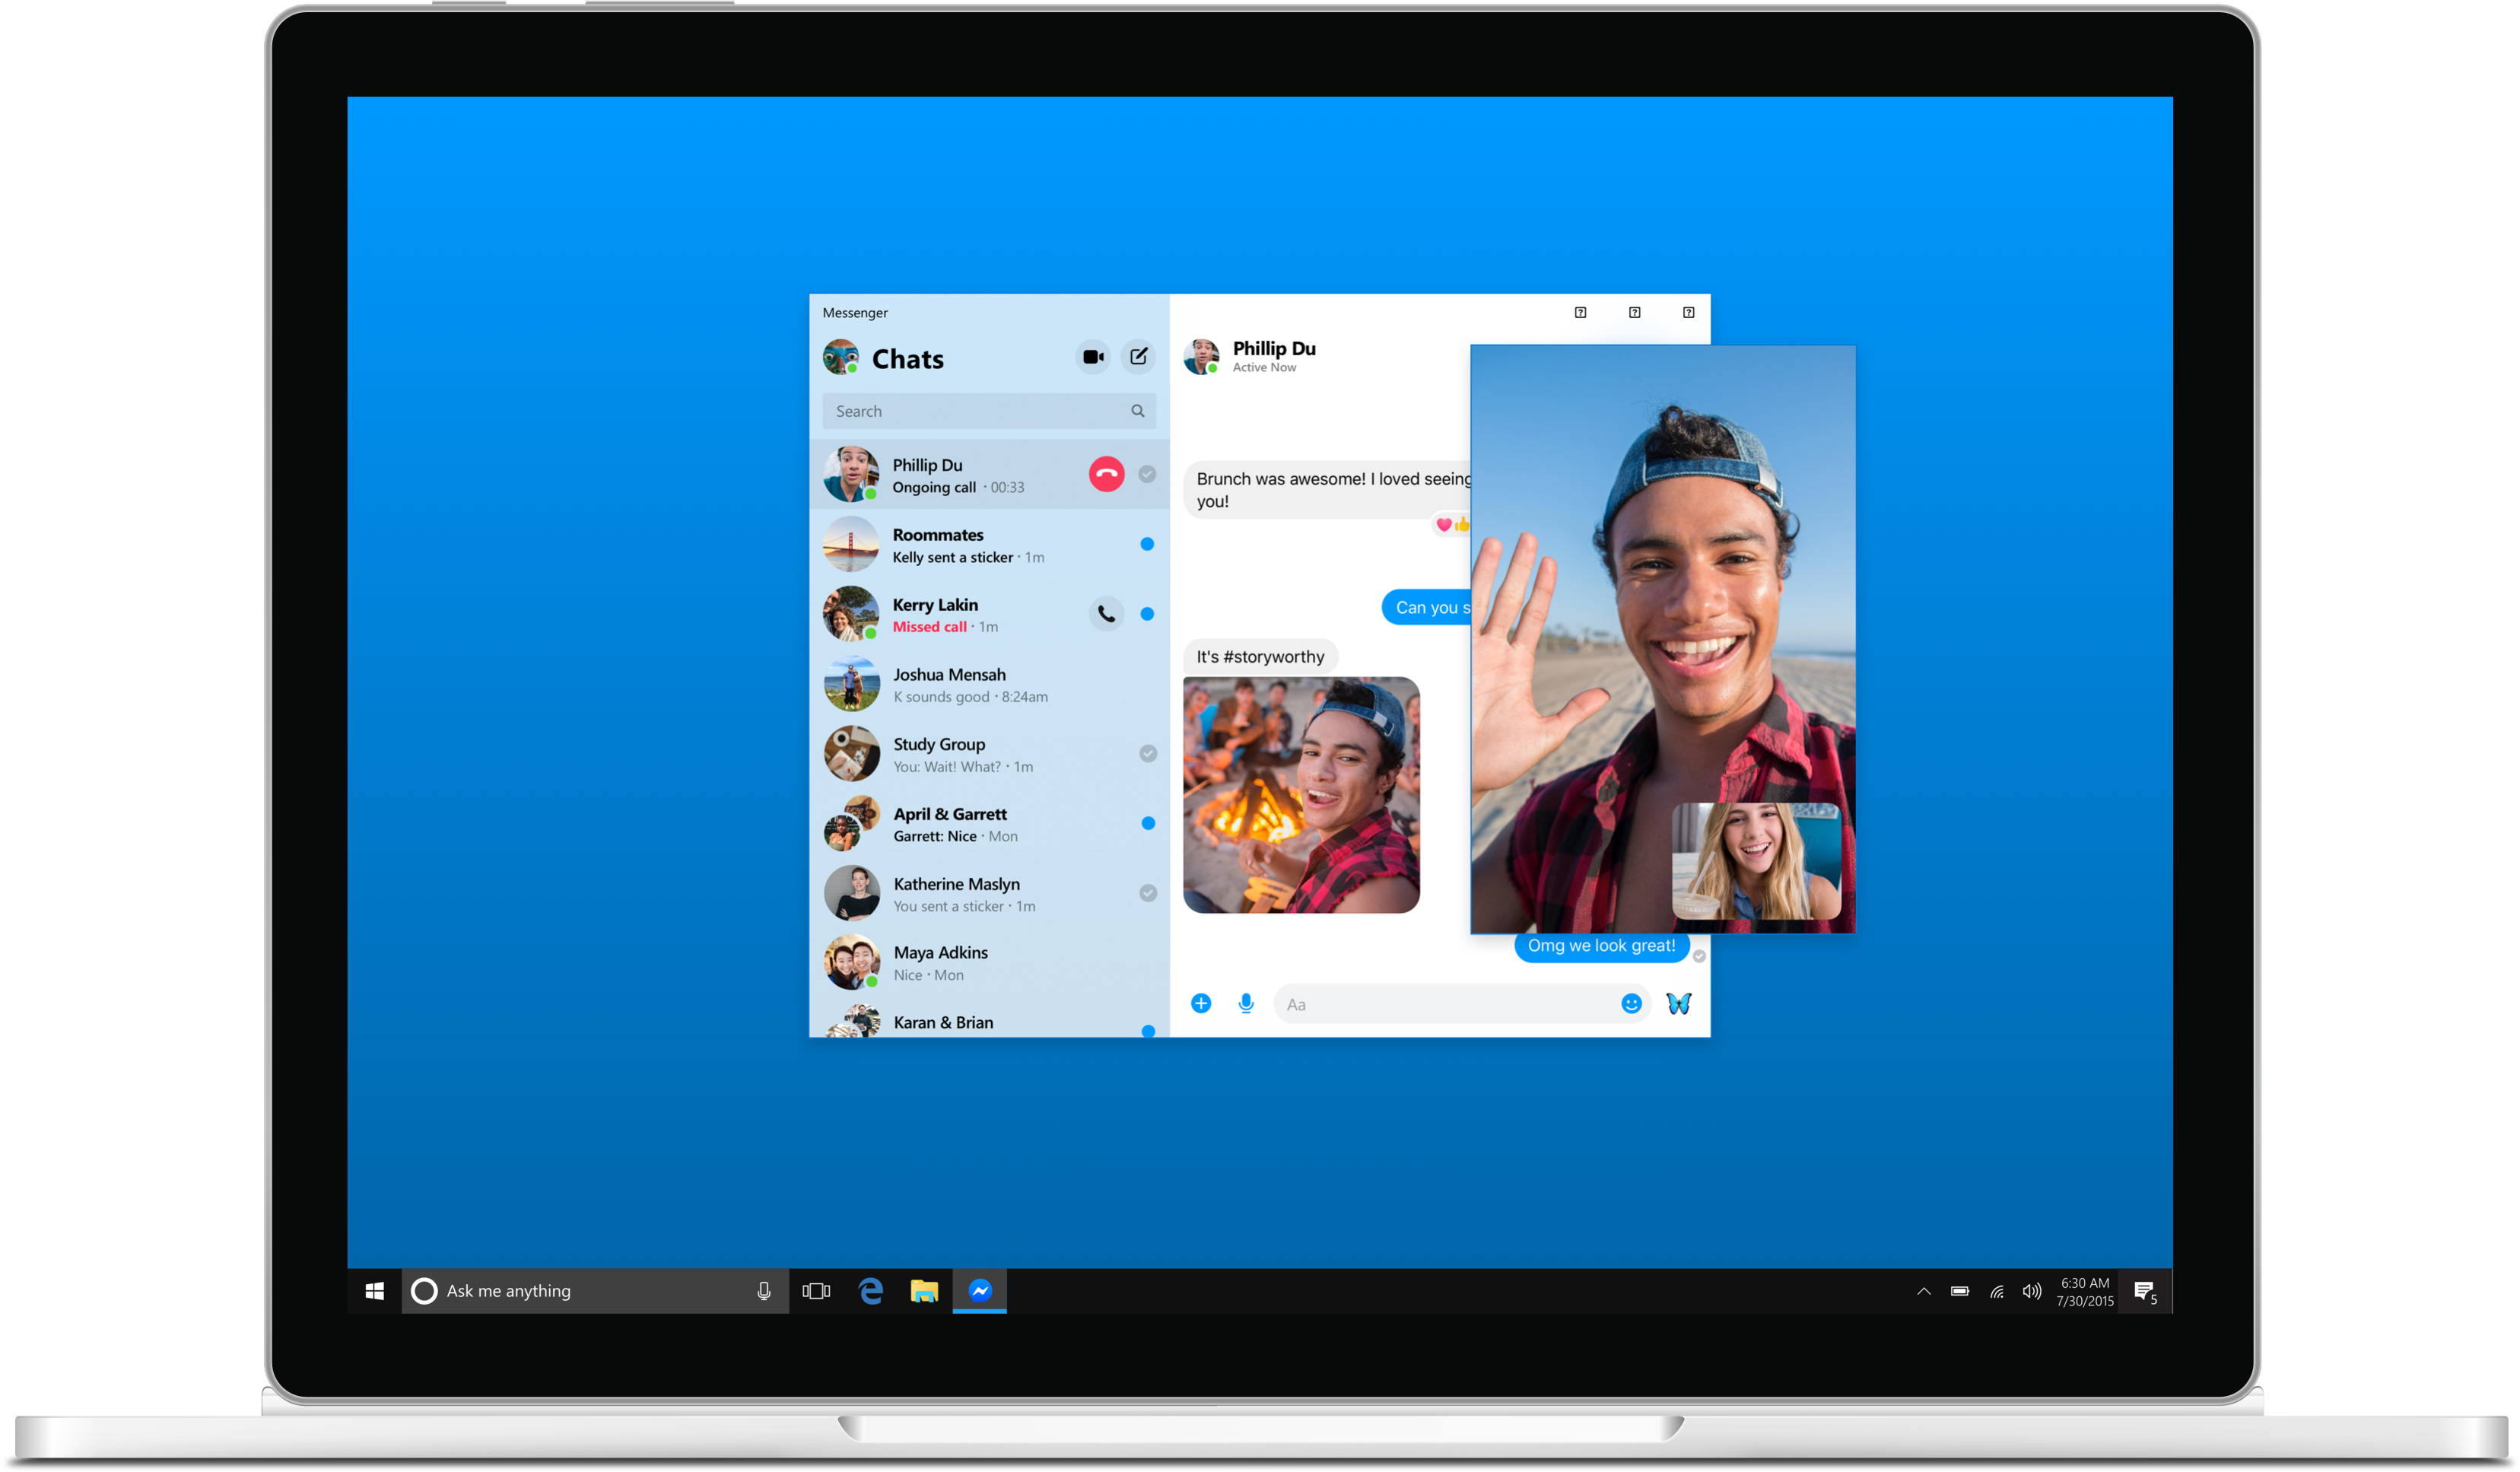 Facebook Messenger is coming to the desktop - The Verge